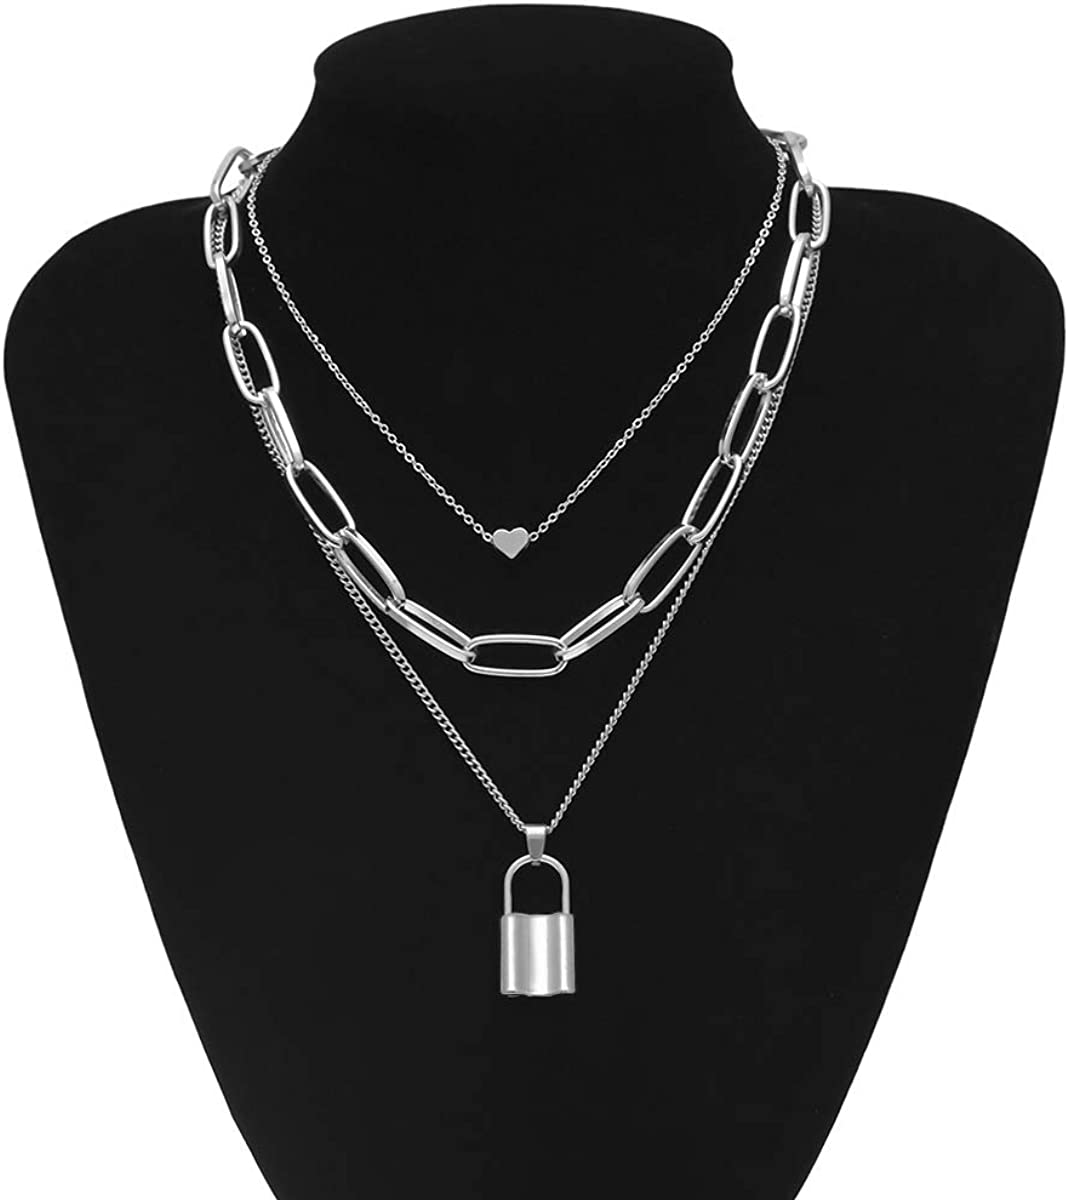 Hip Hop Rhinestone Shiny Cuban Link Chain Choker Bling Collar Chains Chunky Necklace Bracelet Fashion Punk Lock Pendant Iced Curb Chunky Chain Necklace for Women Girls Jewelry